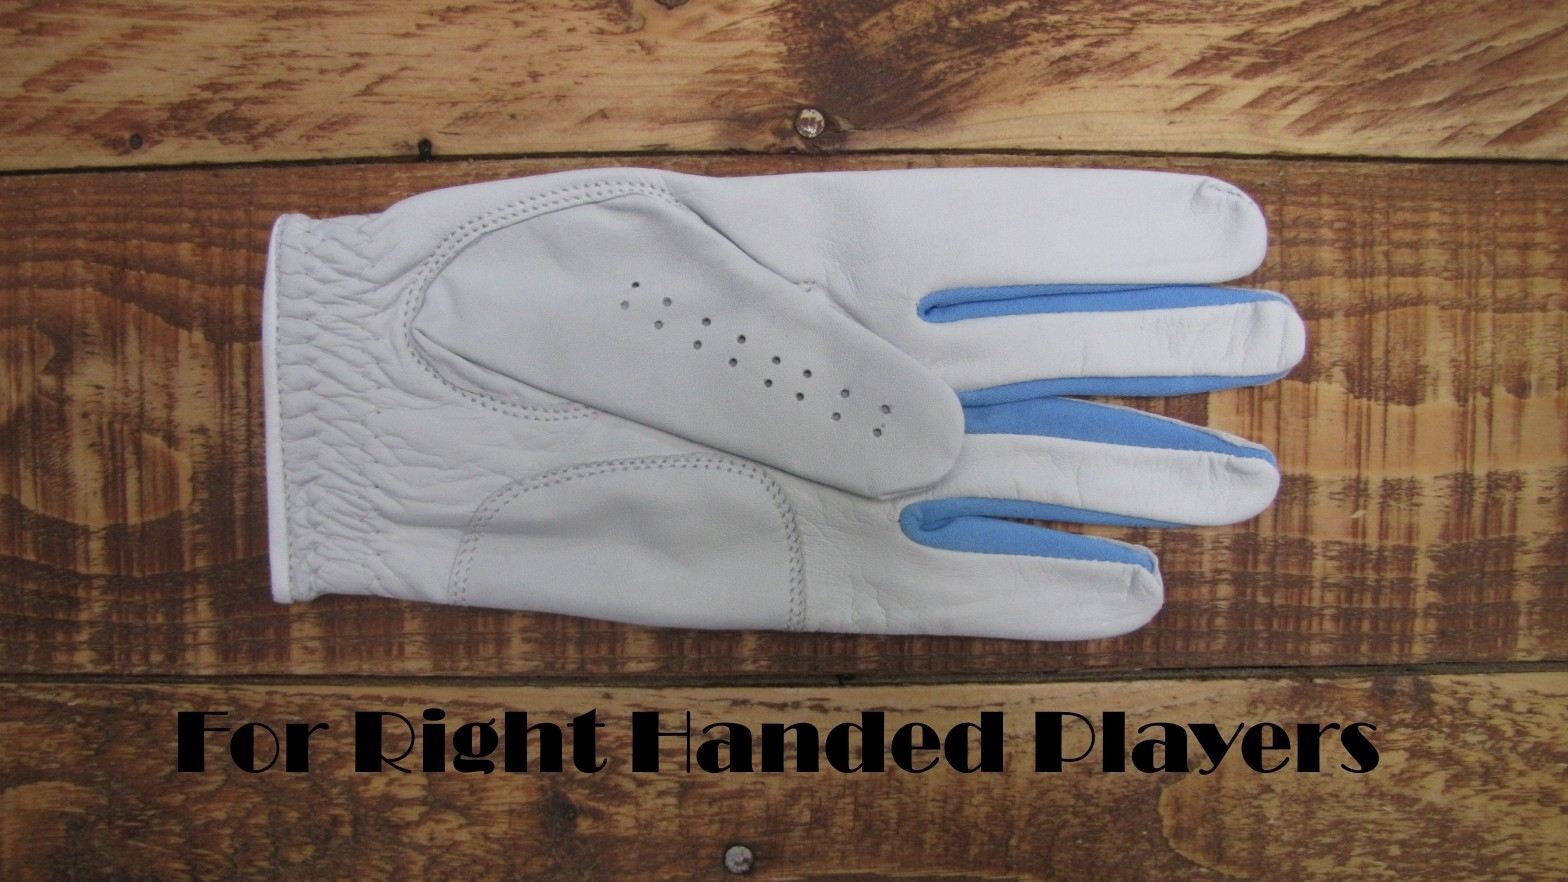 LADIES GABRETTA WHITE LEATHER GOLF GLOVE (LEFT HAND GLOVE) Blue Strips